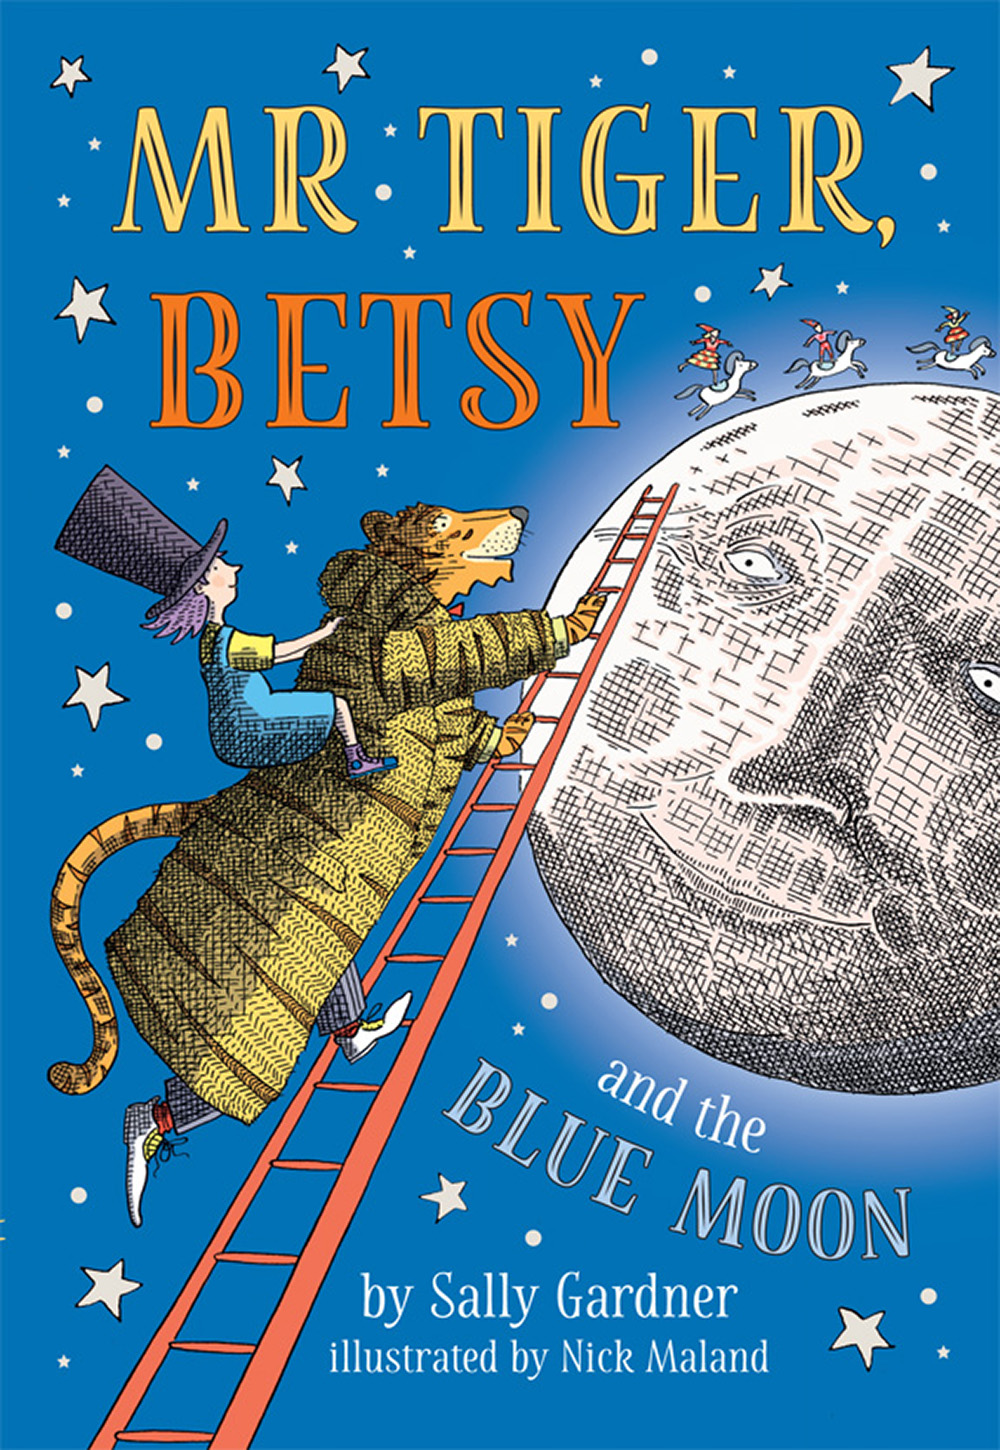 Gardner_MR TIGER, BETSY and the BLUE MOON_cover only